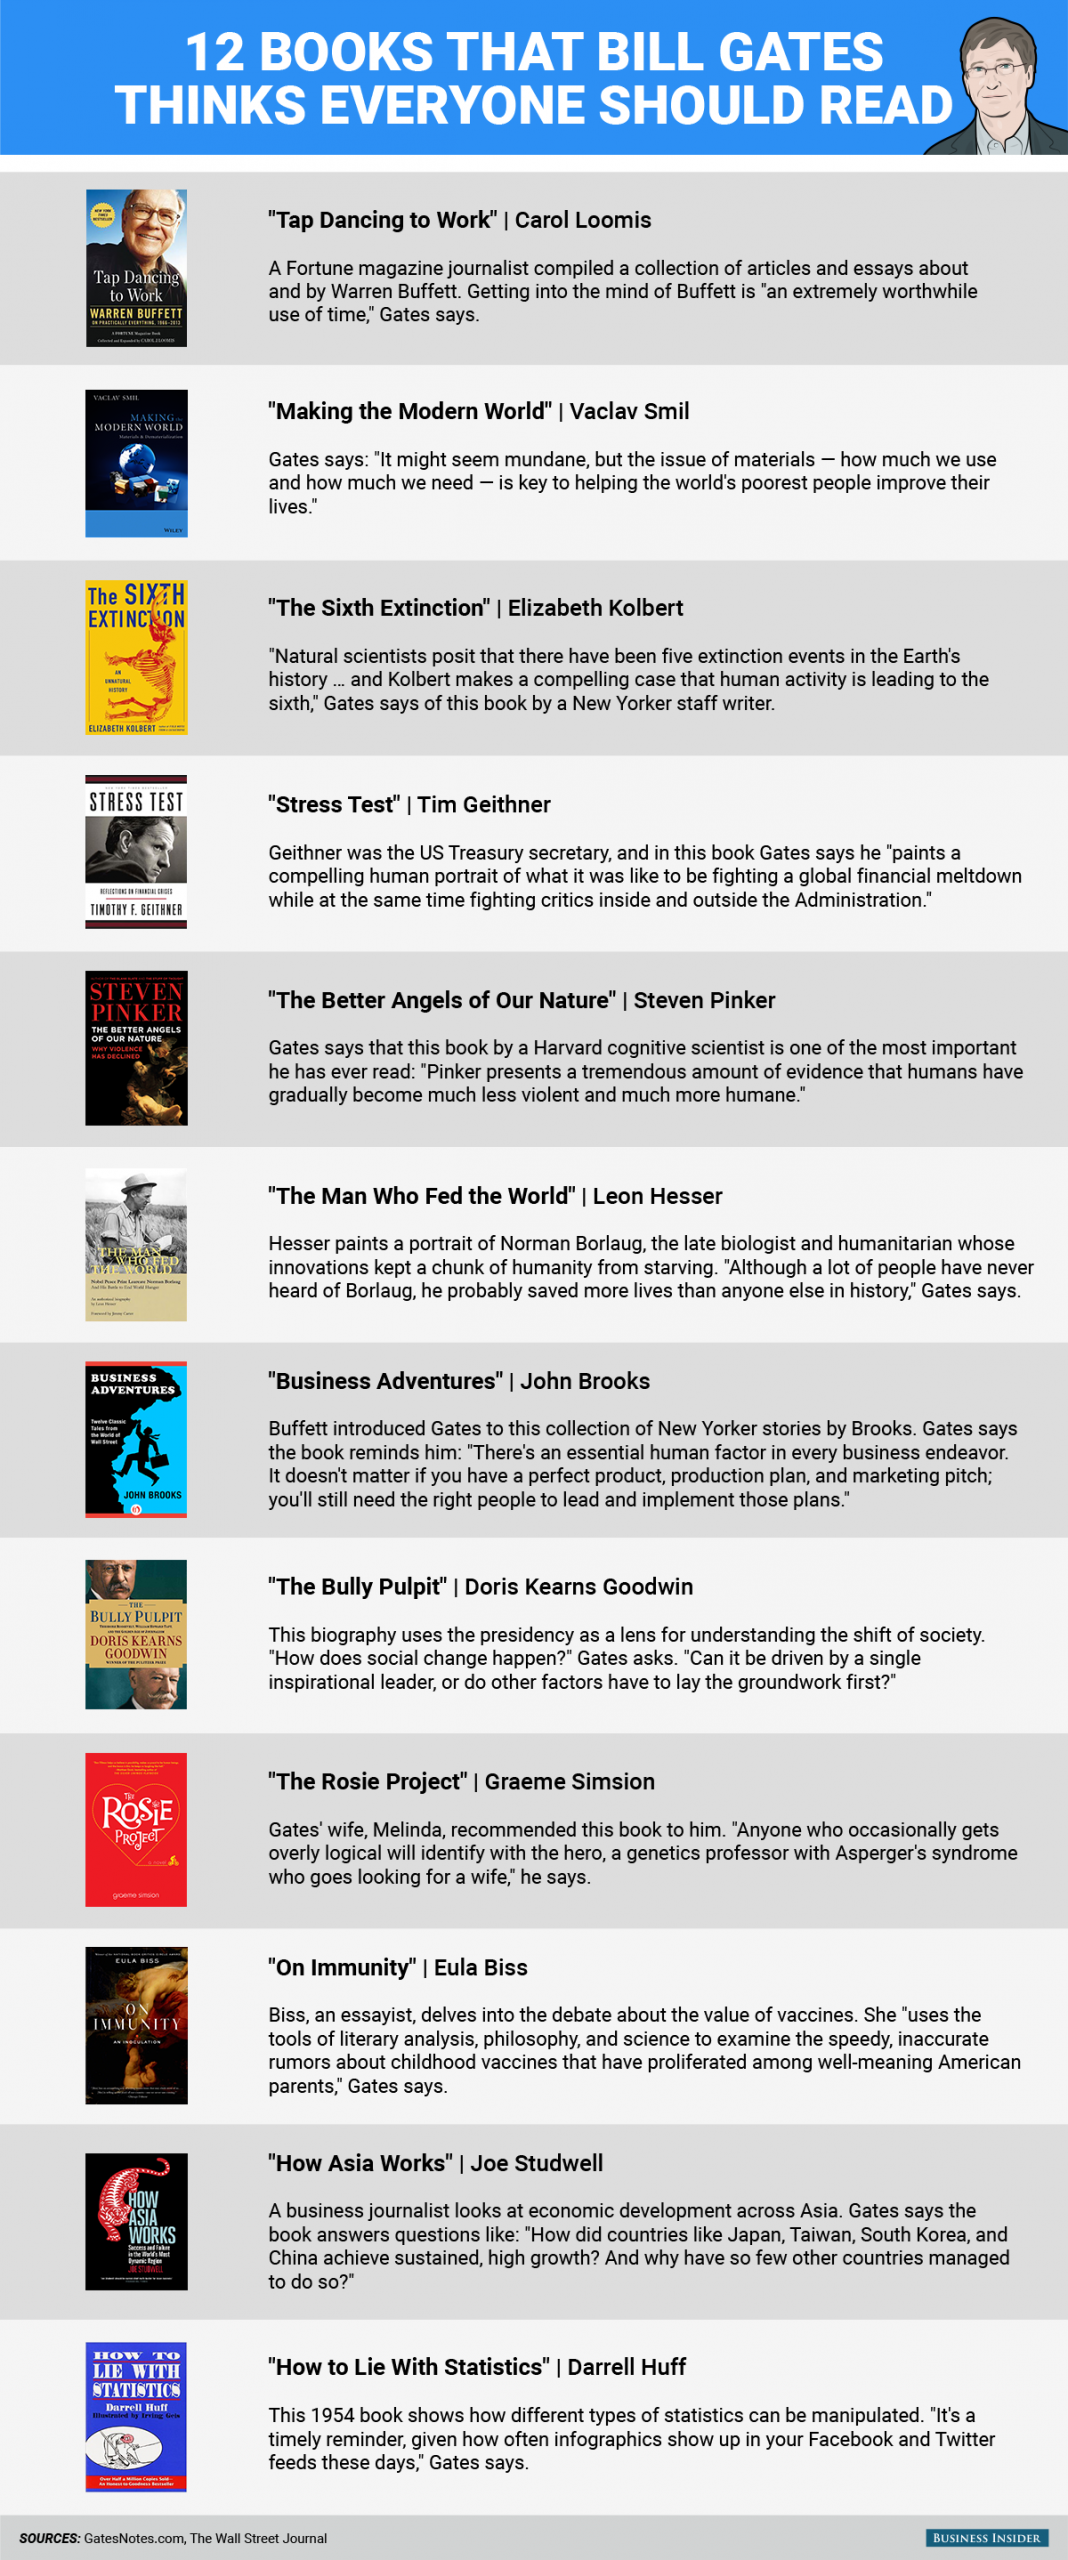 12 Books that Bill Gates Enjoyed and Recommends as Must-Reads - Infographic